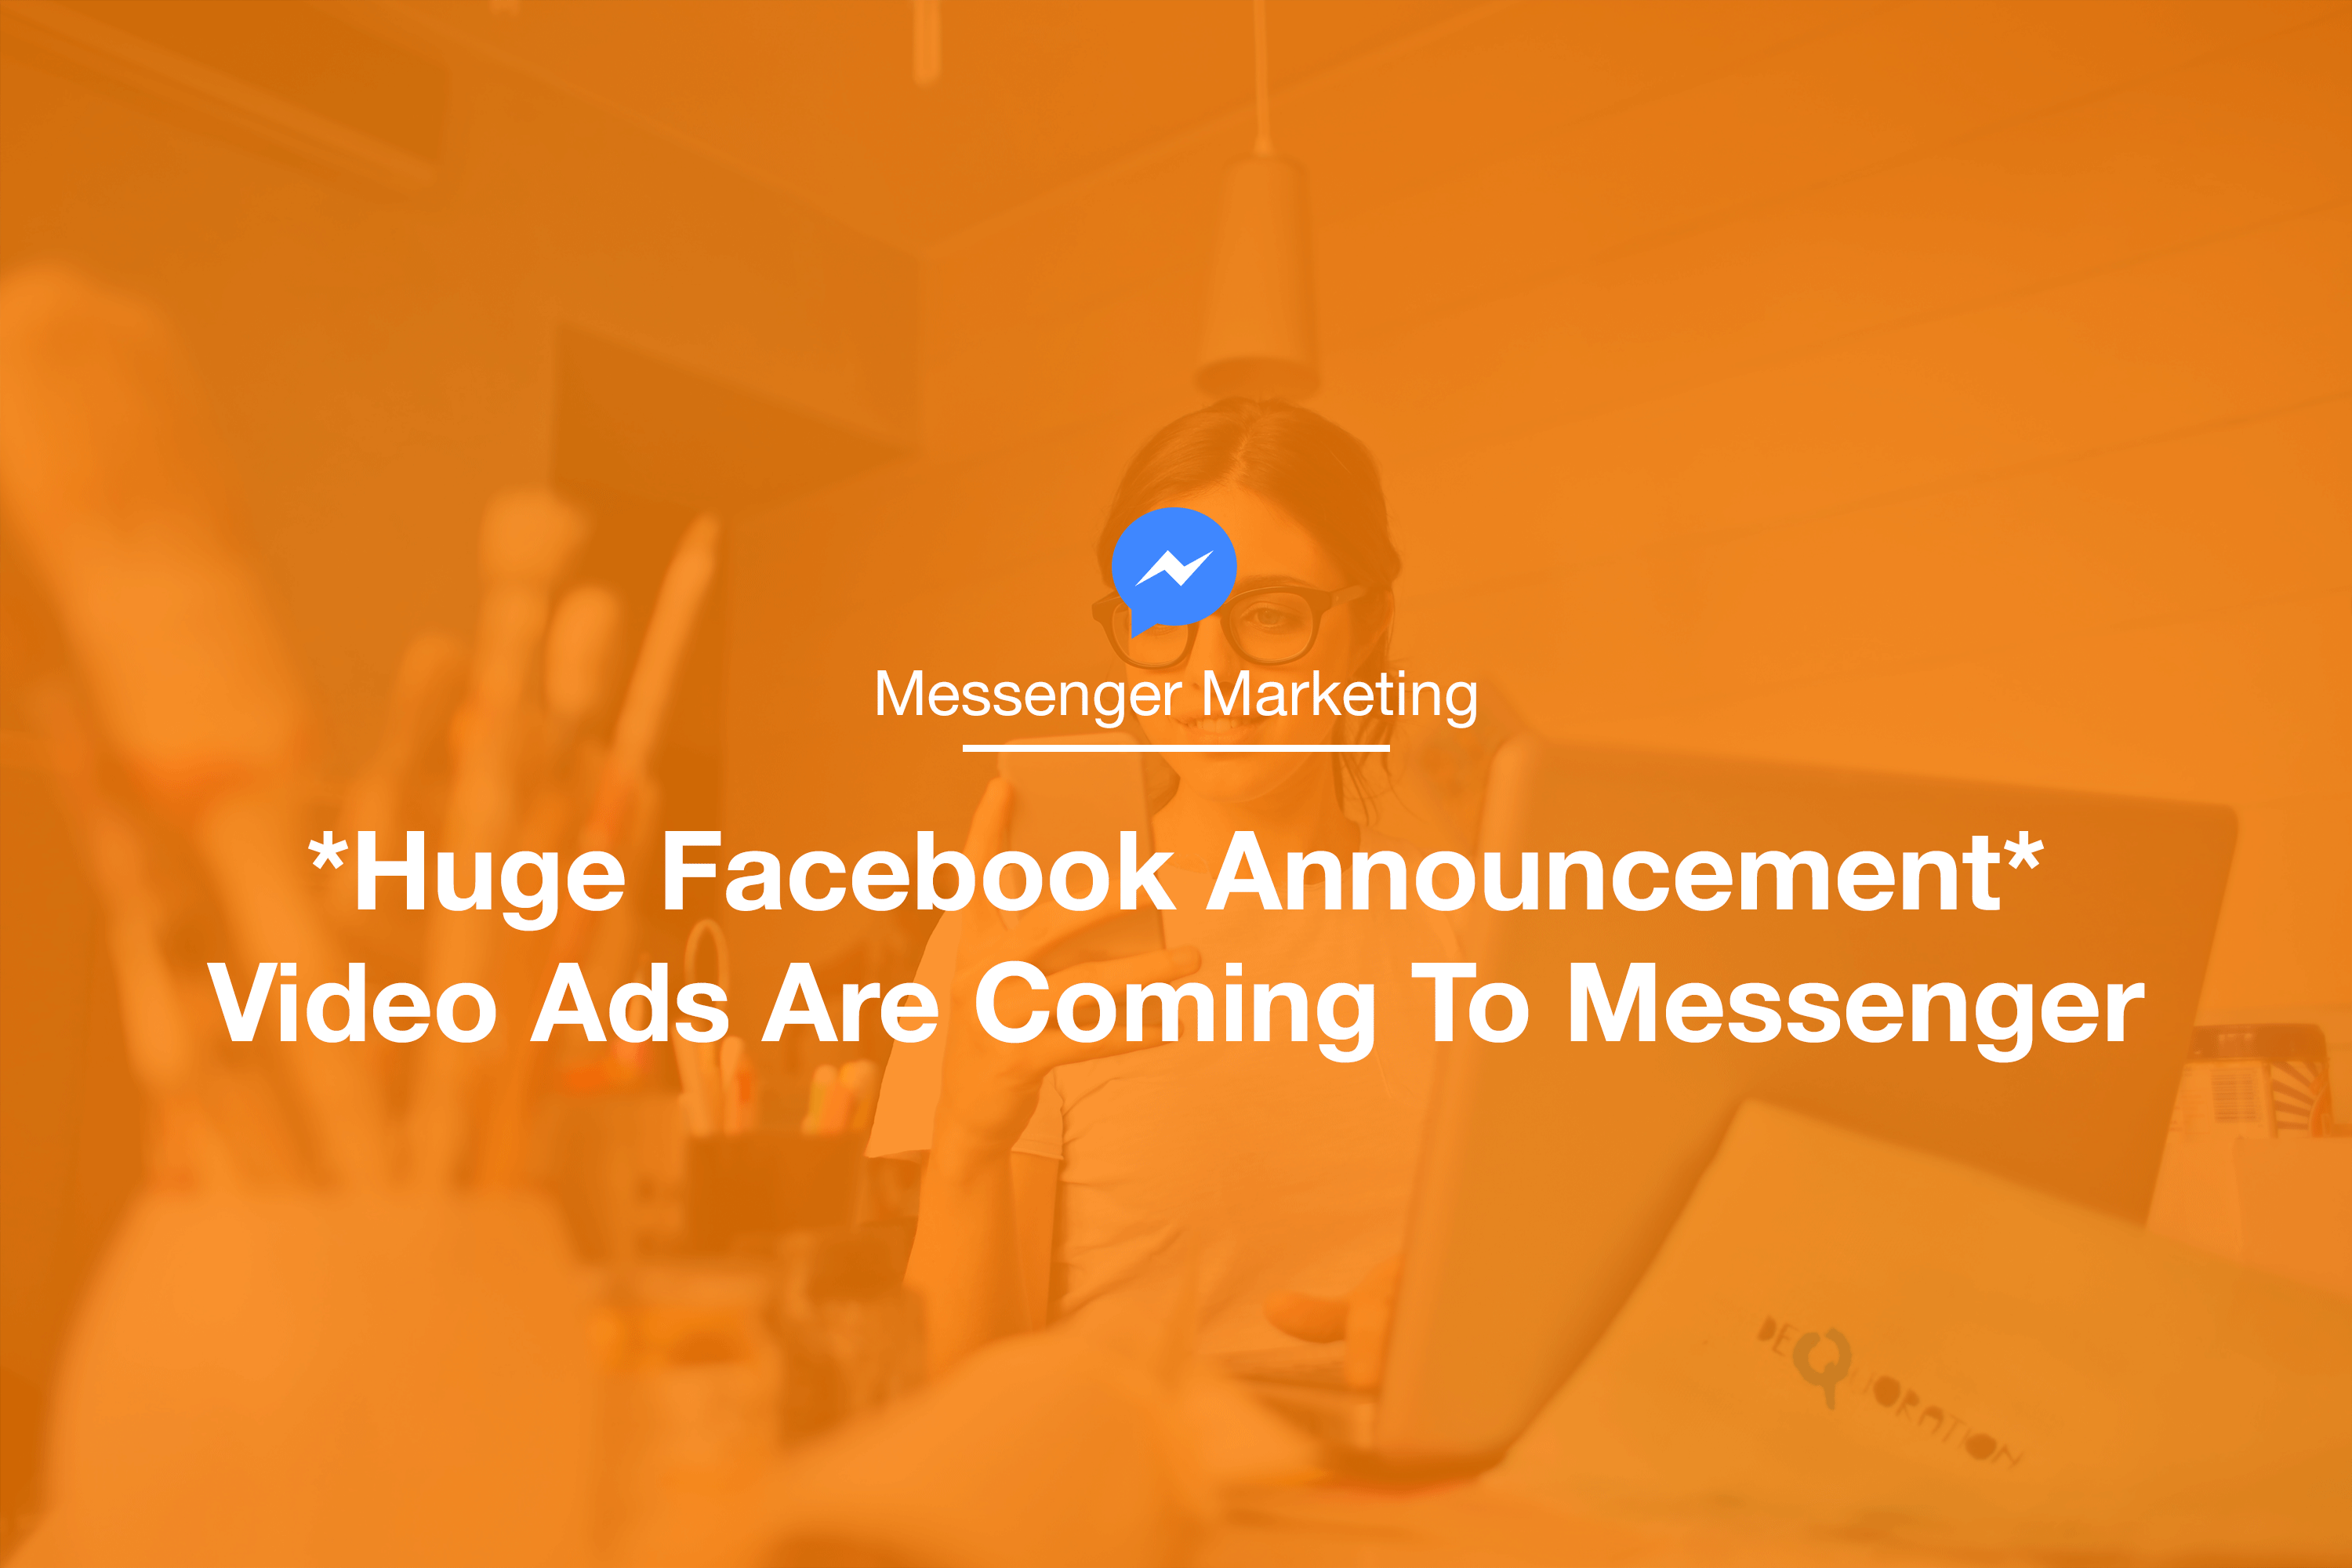 Huge Facebook Announcement: Video Ads are Coming to Messenger